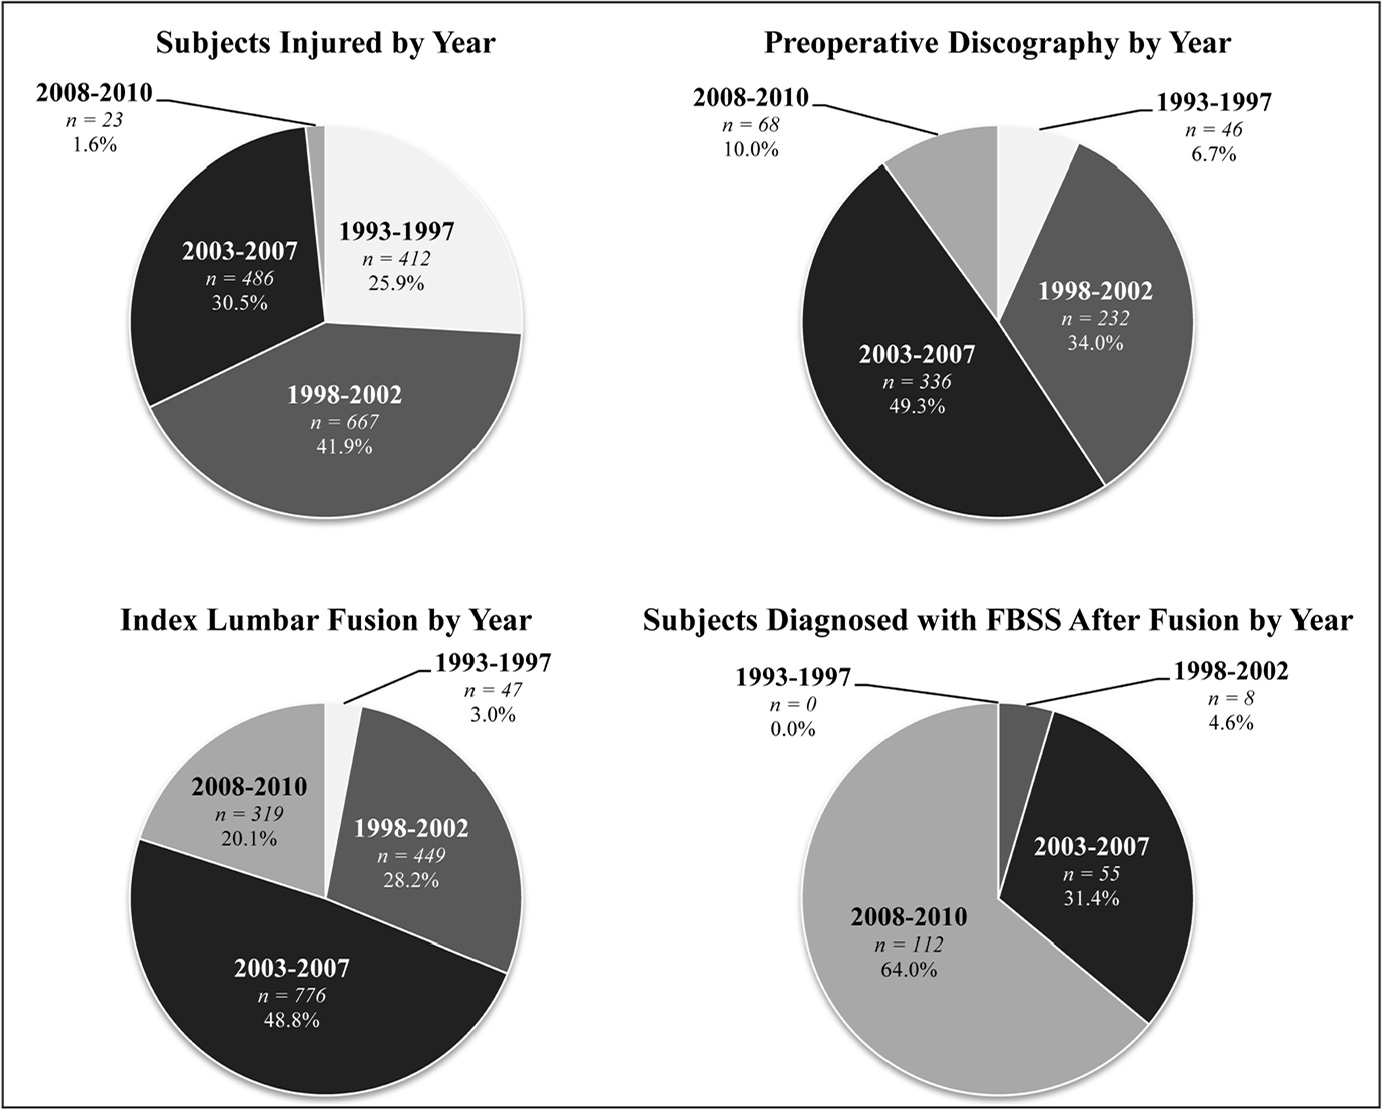 The rates of patient injury, diskography, index fusion, and postoperative failed back surgery syndrome (FBSS) by year.